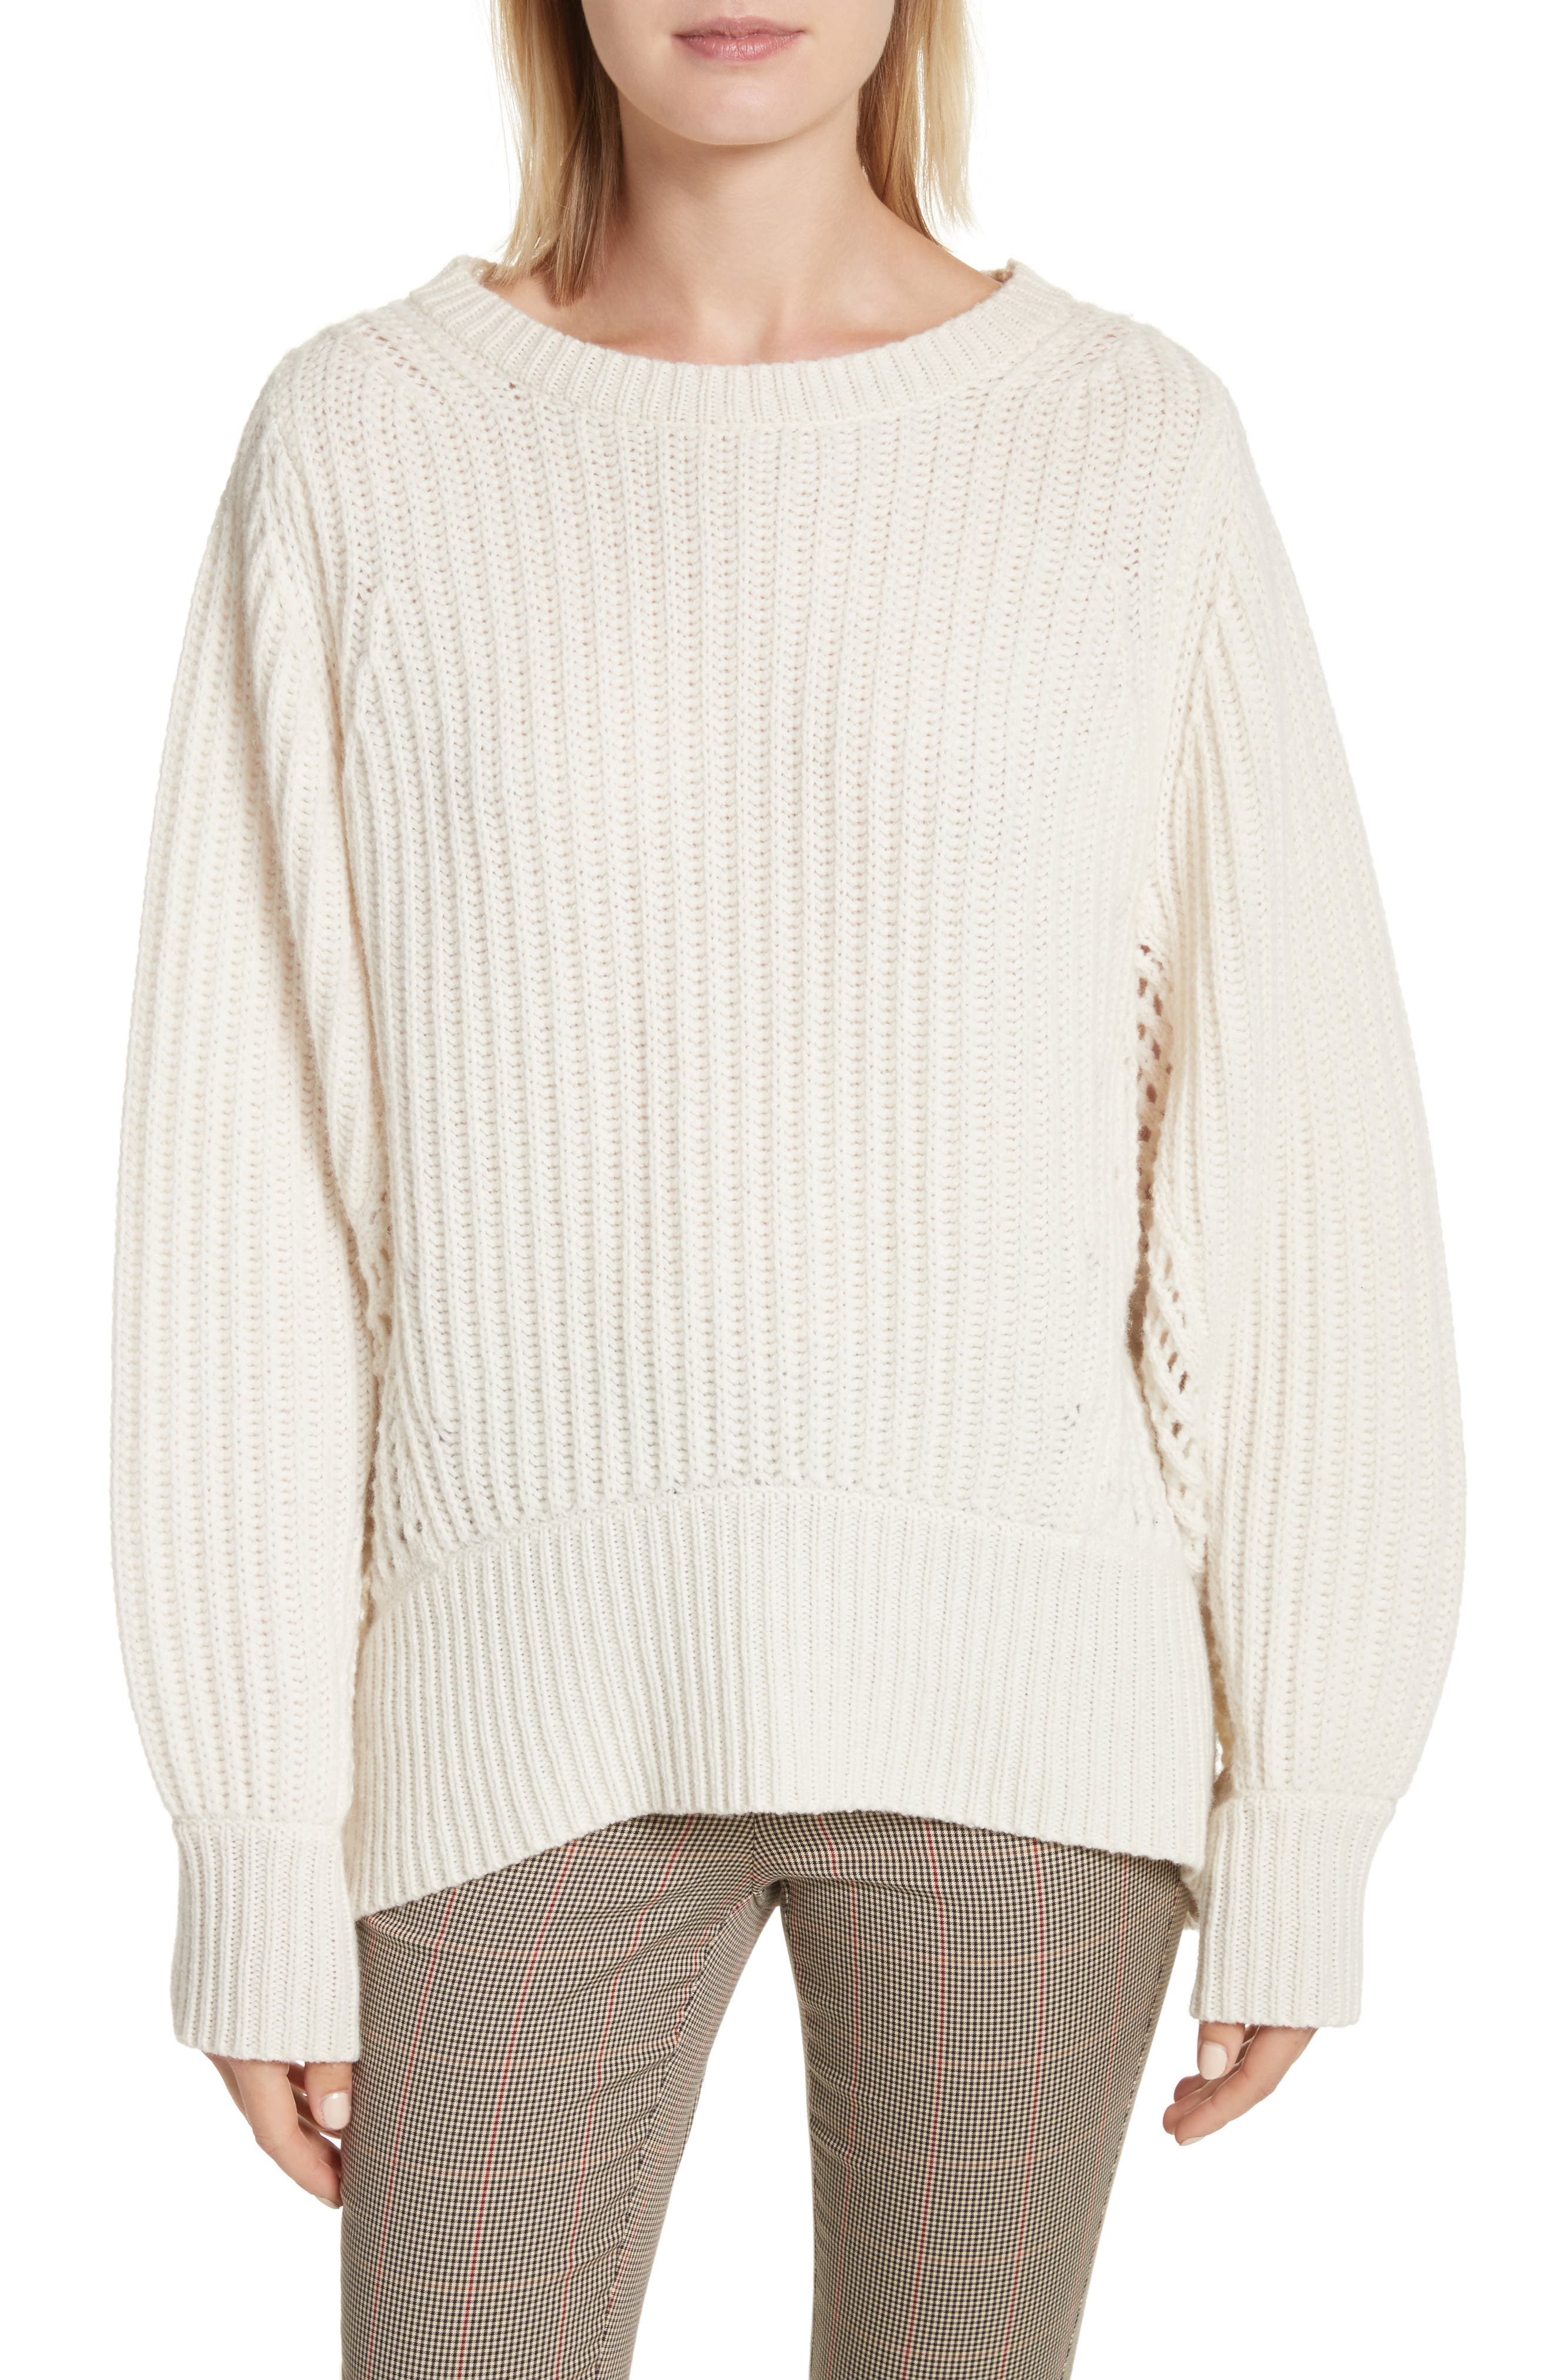 Womens White Turtleneck Sweater